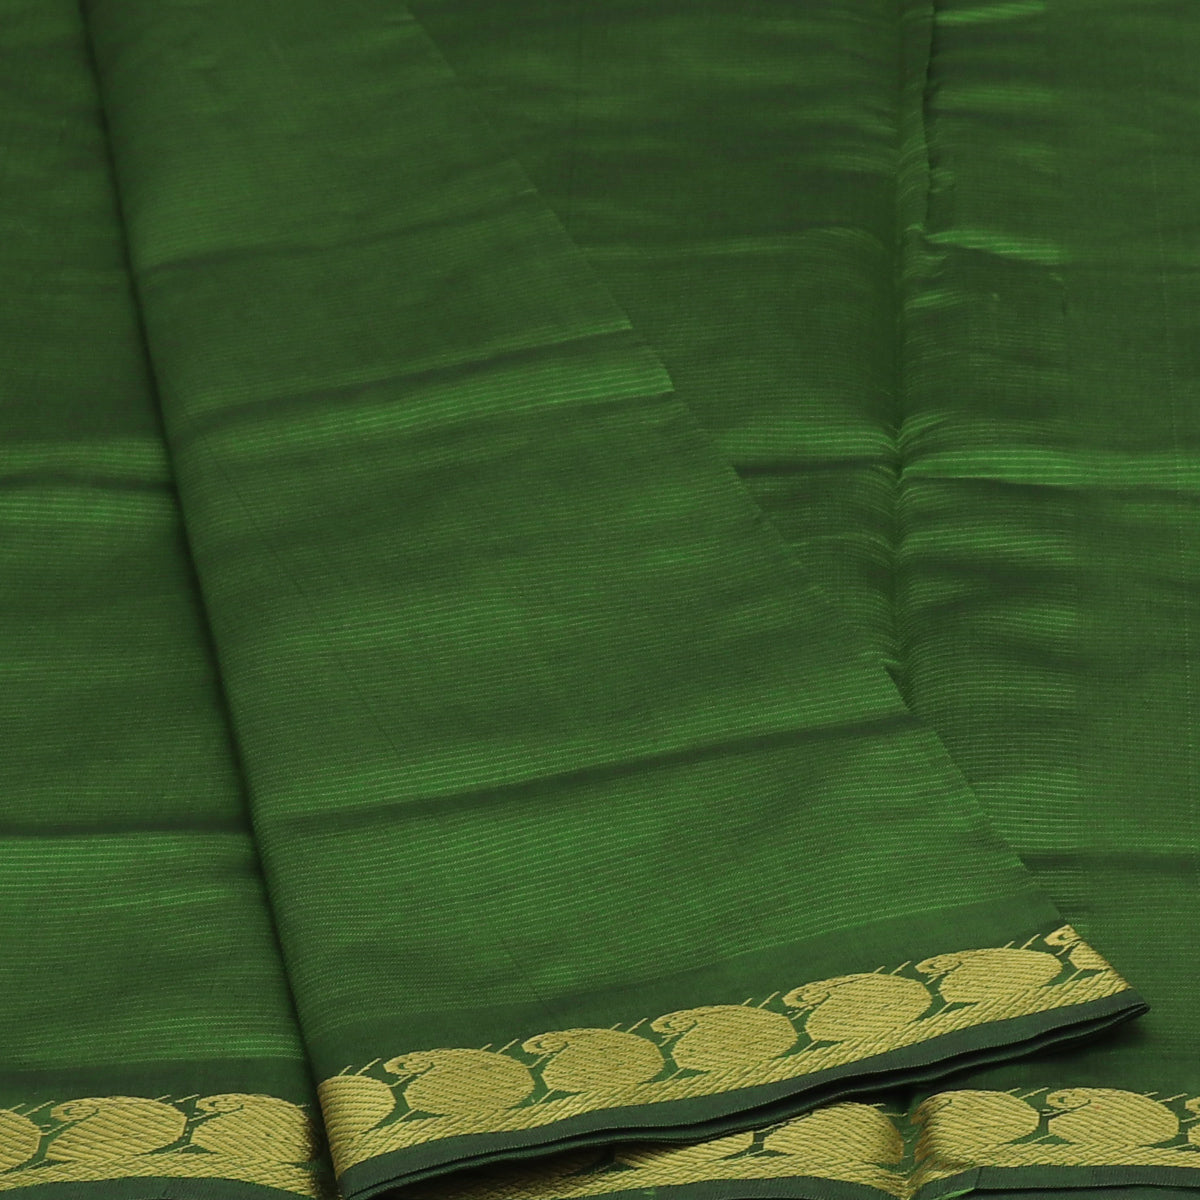 Blended Cotton Saree Pine Green and Honey Color with Mango zari border 9 yards